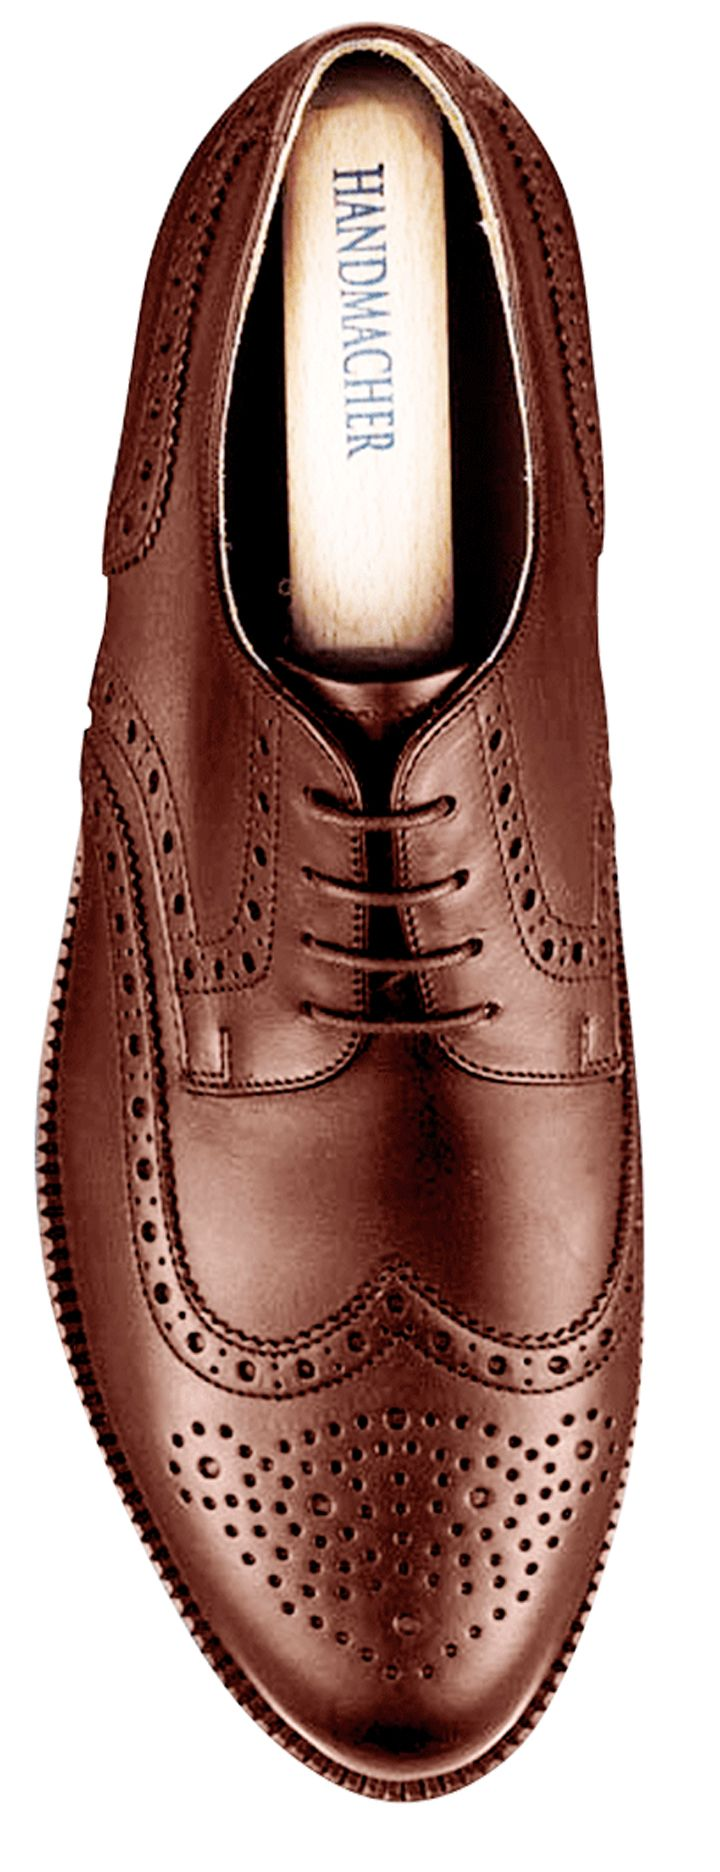 Modell 14 Budapester | Handmacher Schuhe Wood cleated - traditional way of shoemaking in Austria and Hungary. Notably alternative to the Goodyear-Welted or handsewn ones.